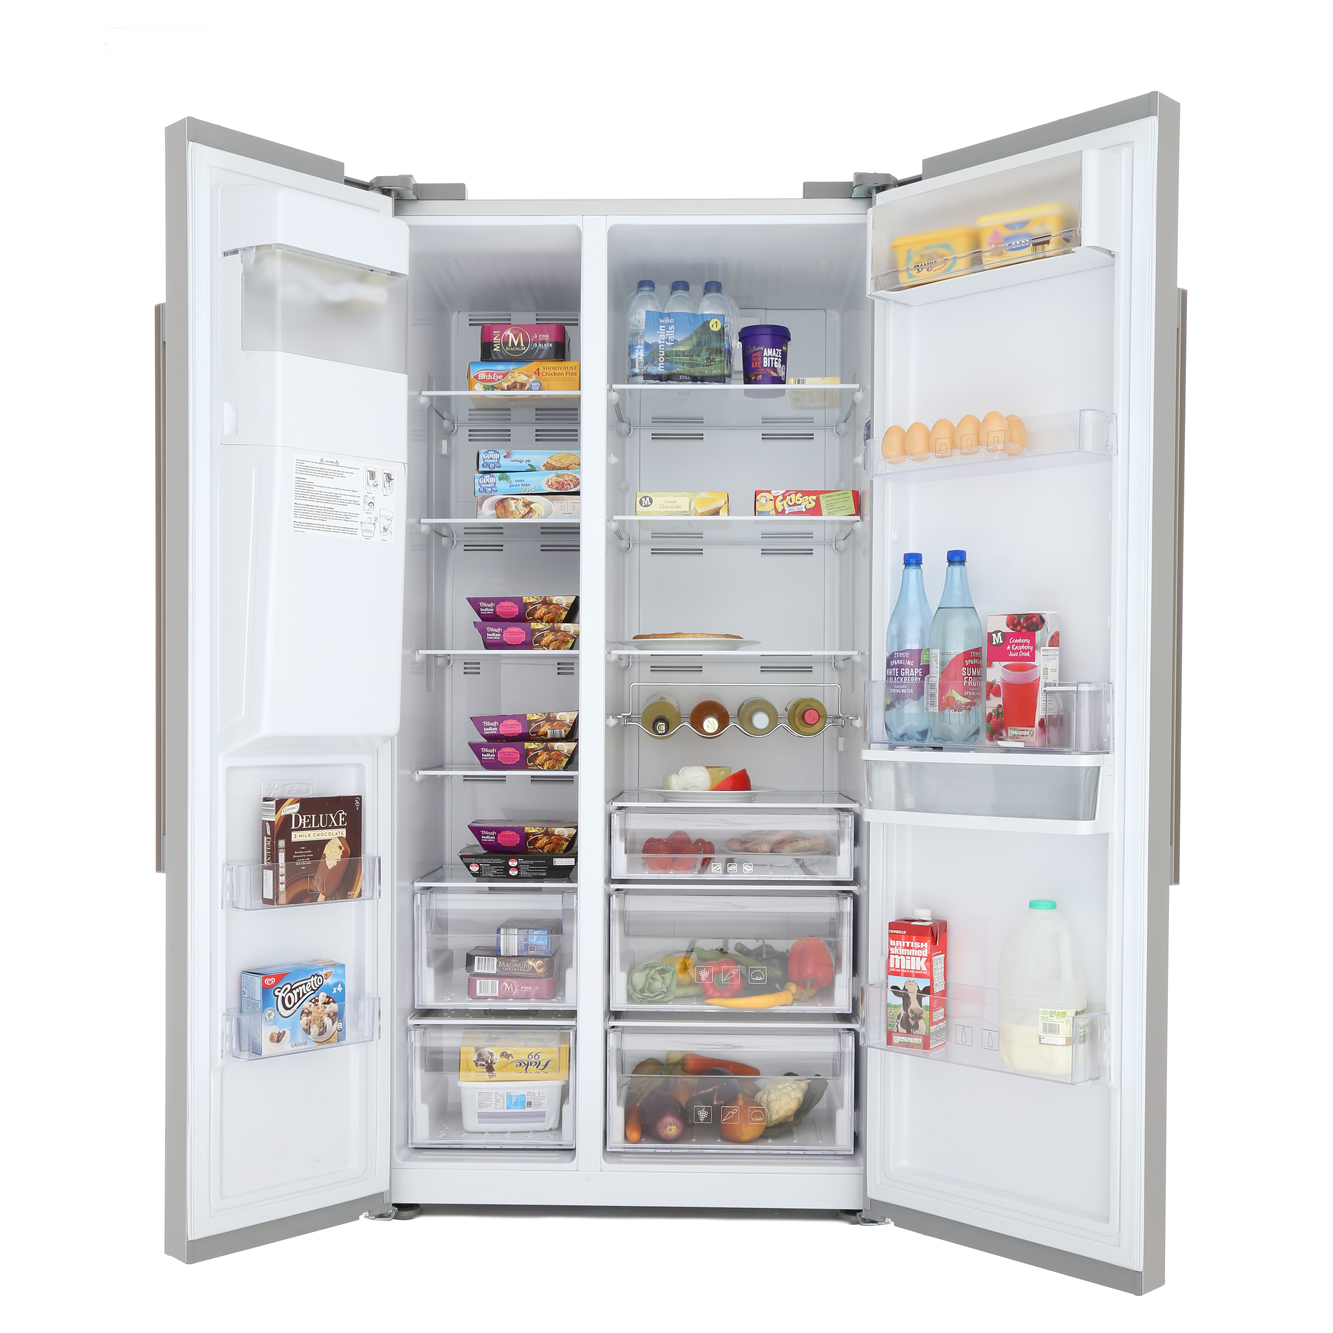 beko asn541s american fridge freezer silver buy online. Black Bedroom Furniture Sets. Home Design Ideas